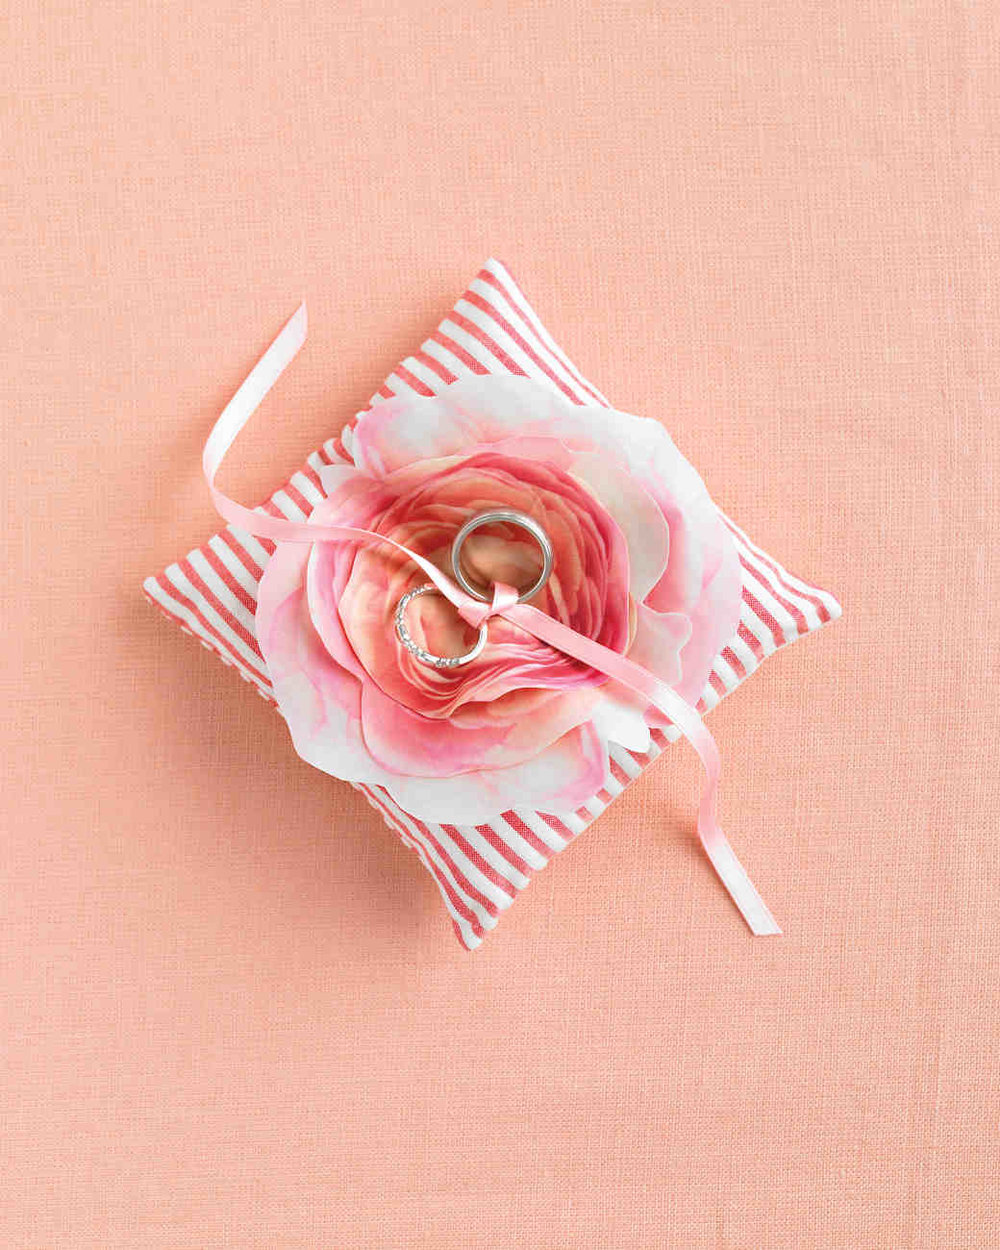 FABRIC FLOWER RING PILLOW  - With our striking trompe l'oeil floral print as clip art, this fabric flower looks just like the real thing. Photography:  Raymond Hom